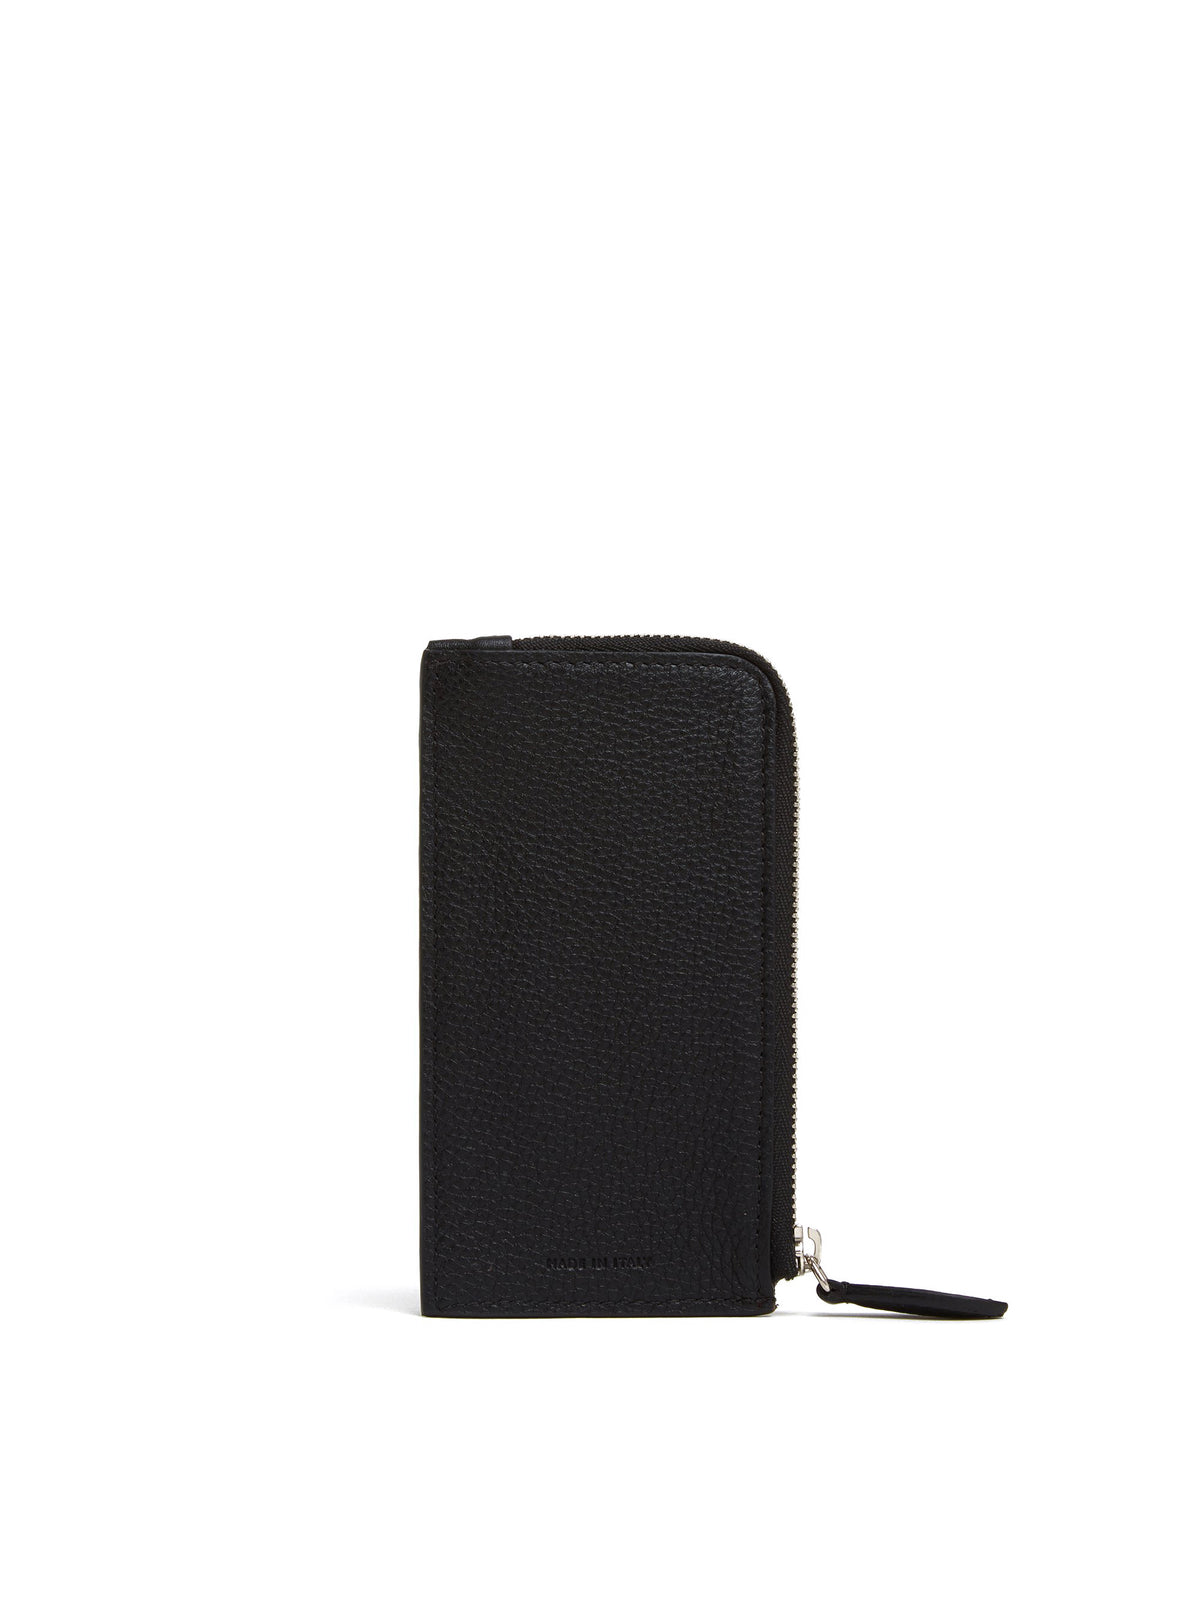 Mark Cross Leather Zip Card Case Tumbled Grain Black Back